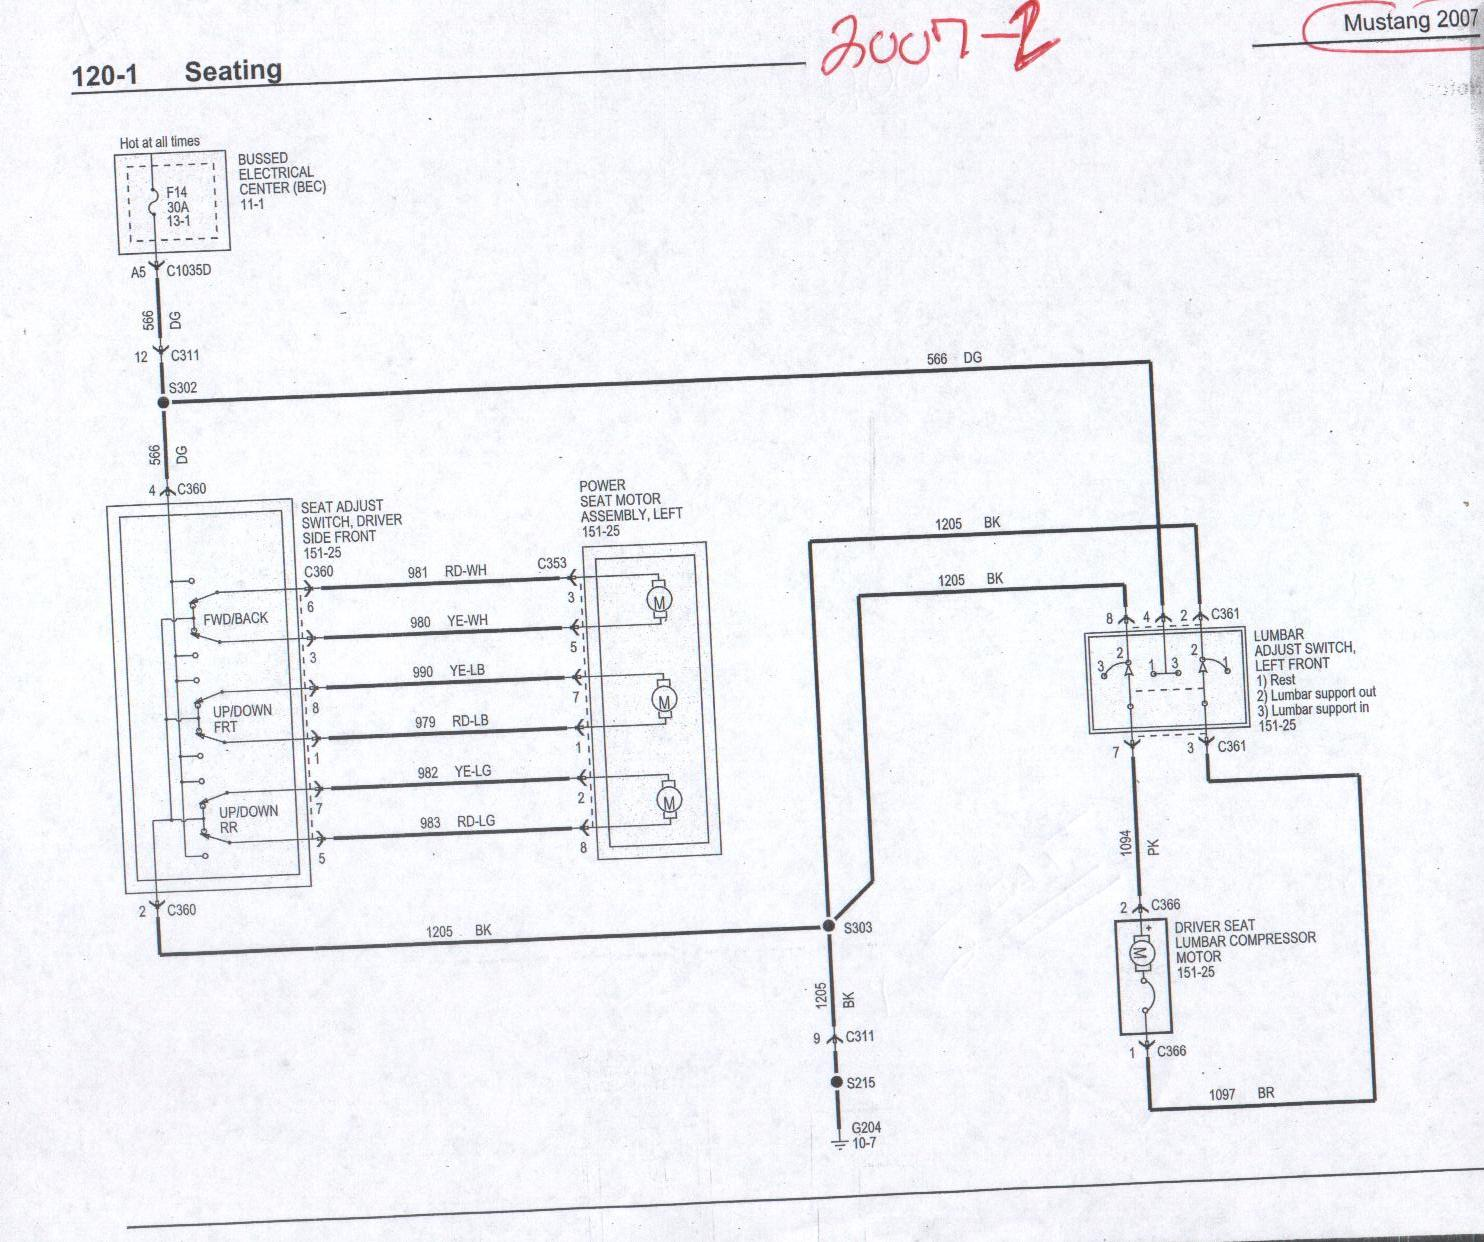 2007 mustang wire diagram